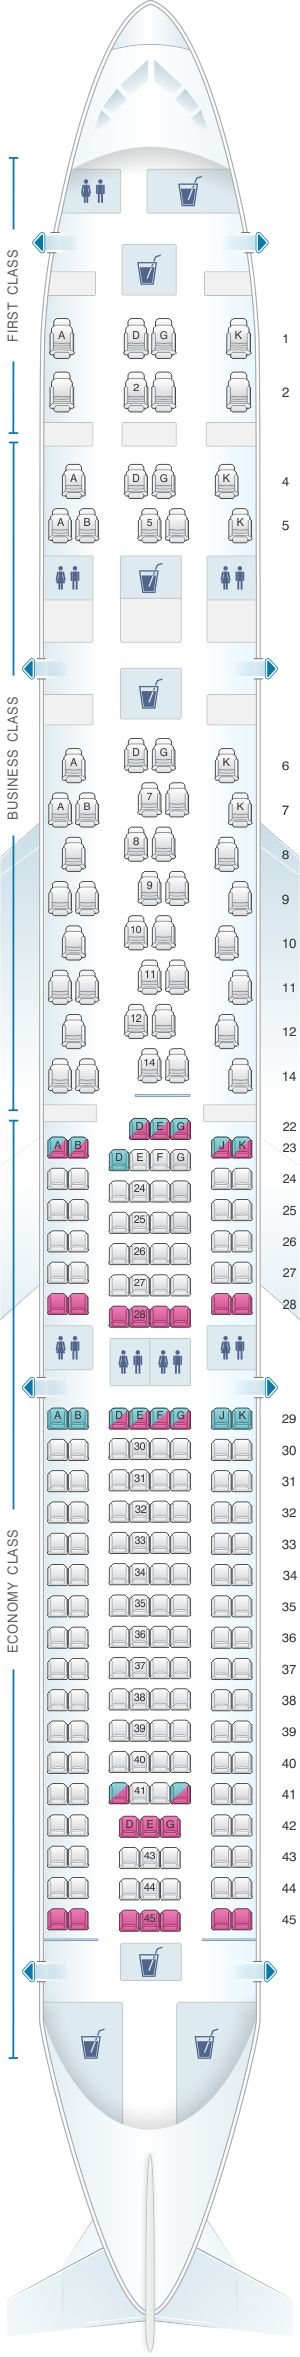 Seat Map SWISS Airbus A330 300